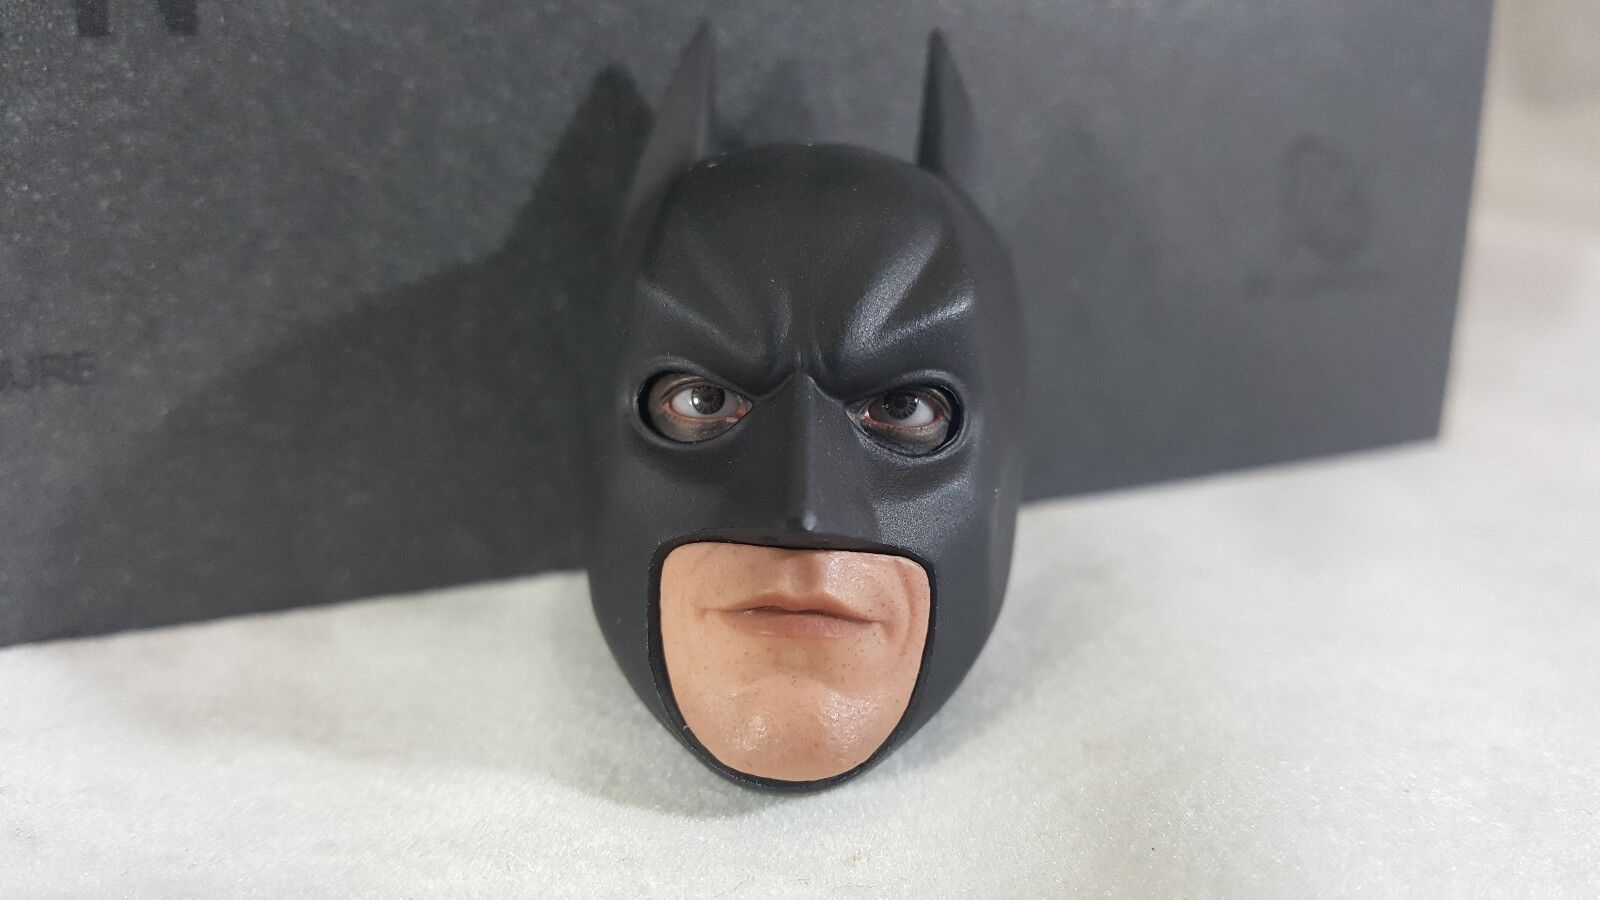 Hot Toys Genuine 1:6 scale DX12 Batman action figure's PERS eye head sculpt